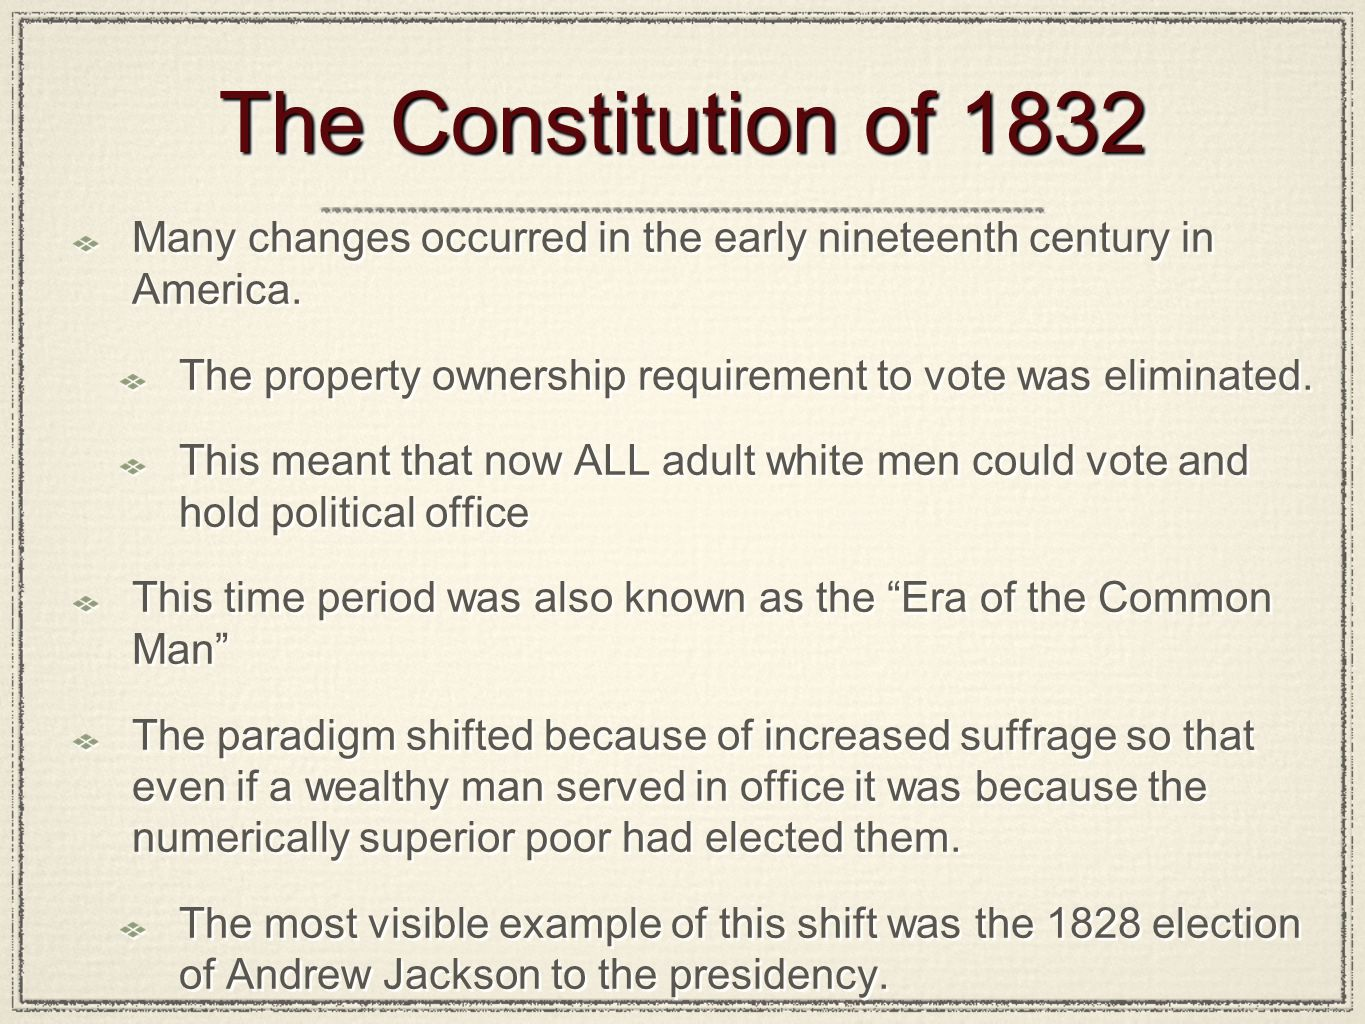 The Constitution of 1832 Many changes occurred in the early nineteenth century in America.